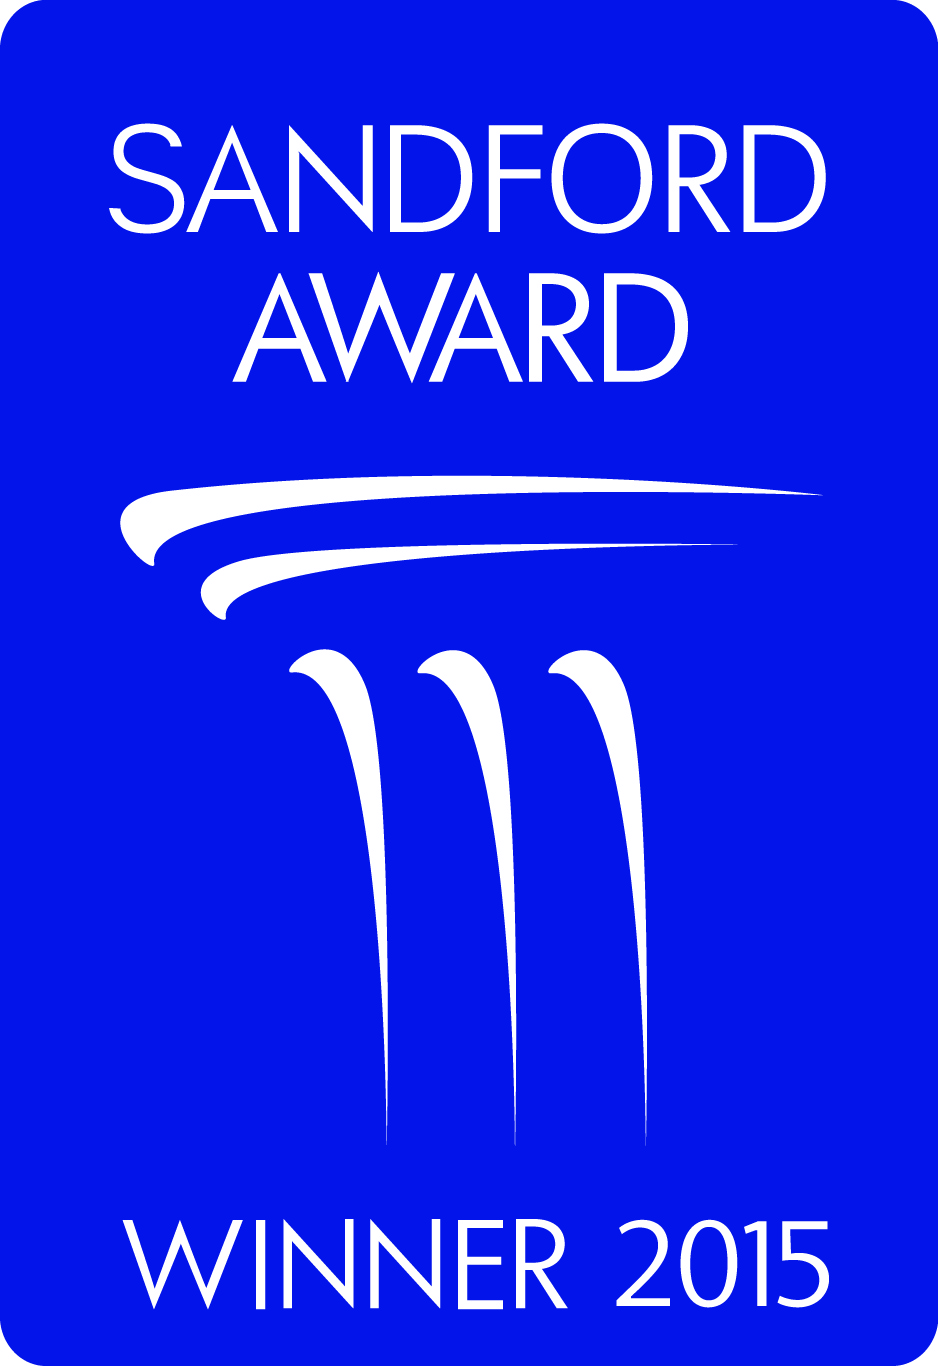 Sandford Award Badge Blue